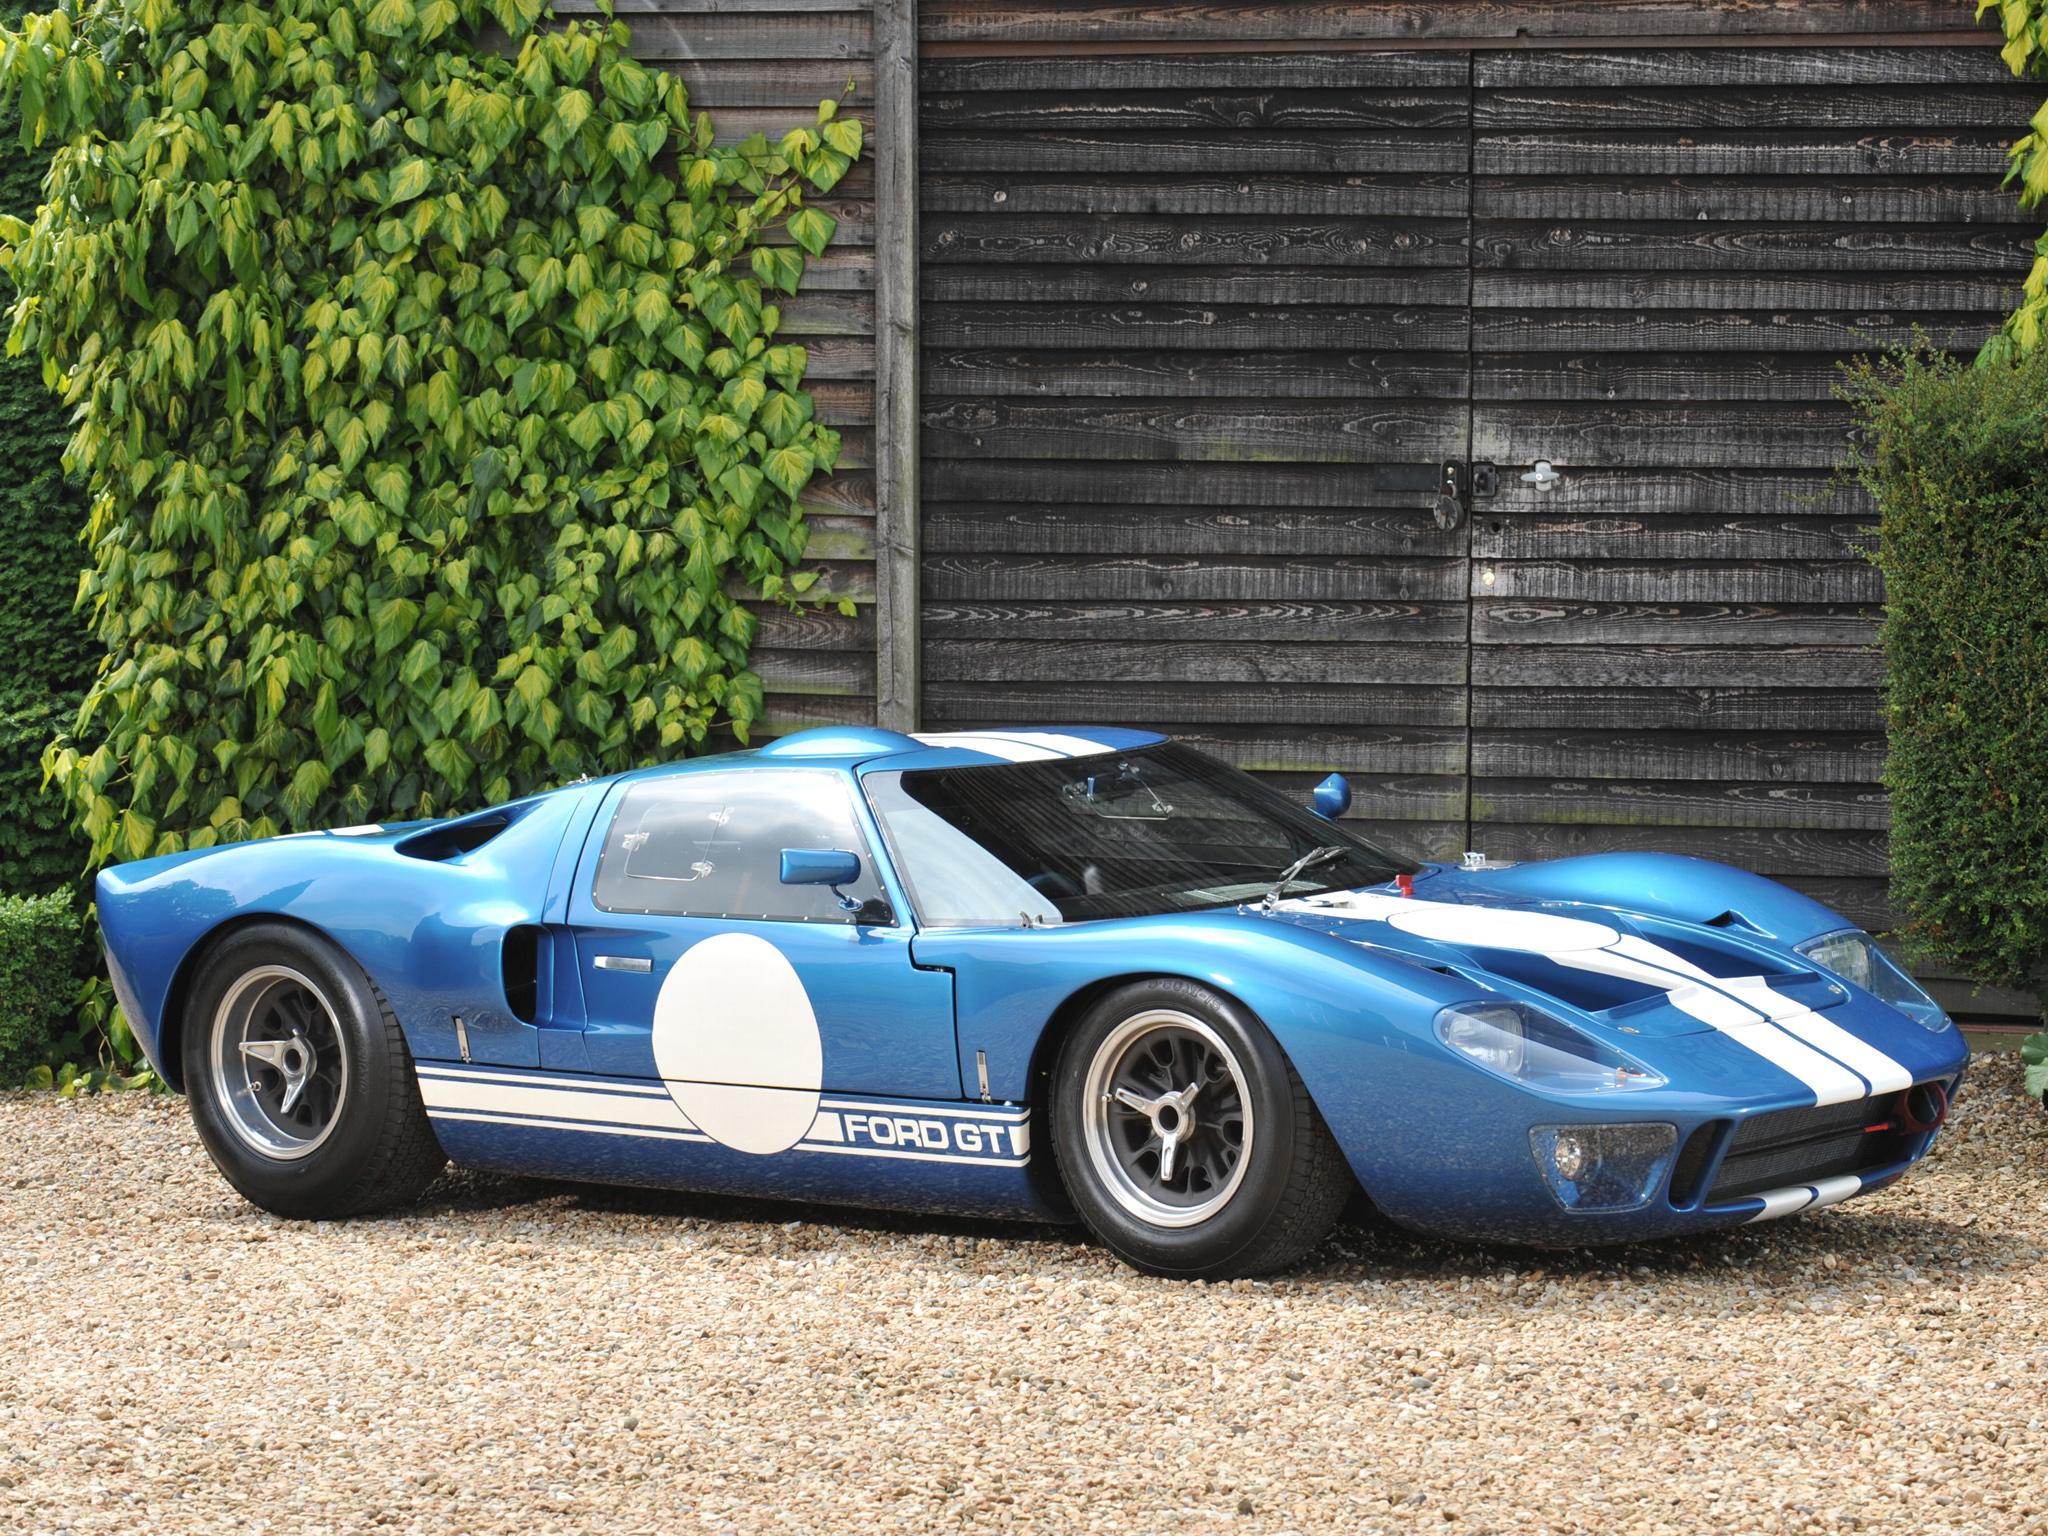 Ford Gt Mkii Supercar Race Racing Classic G T G Wallpaper X  Wallpaperup